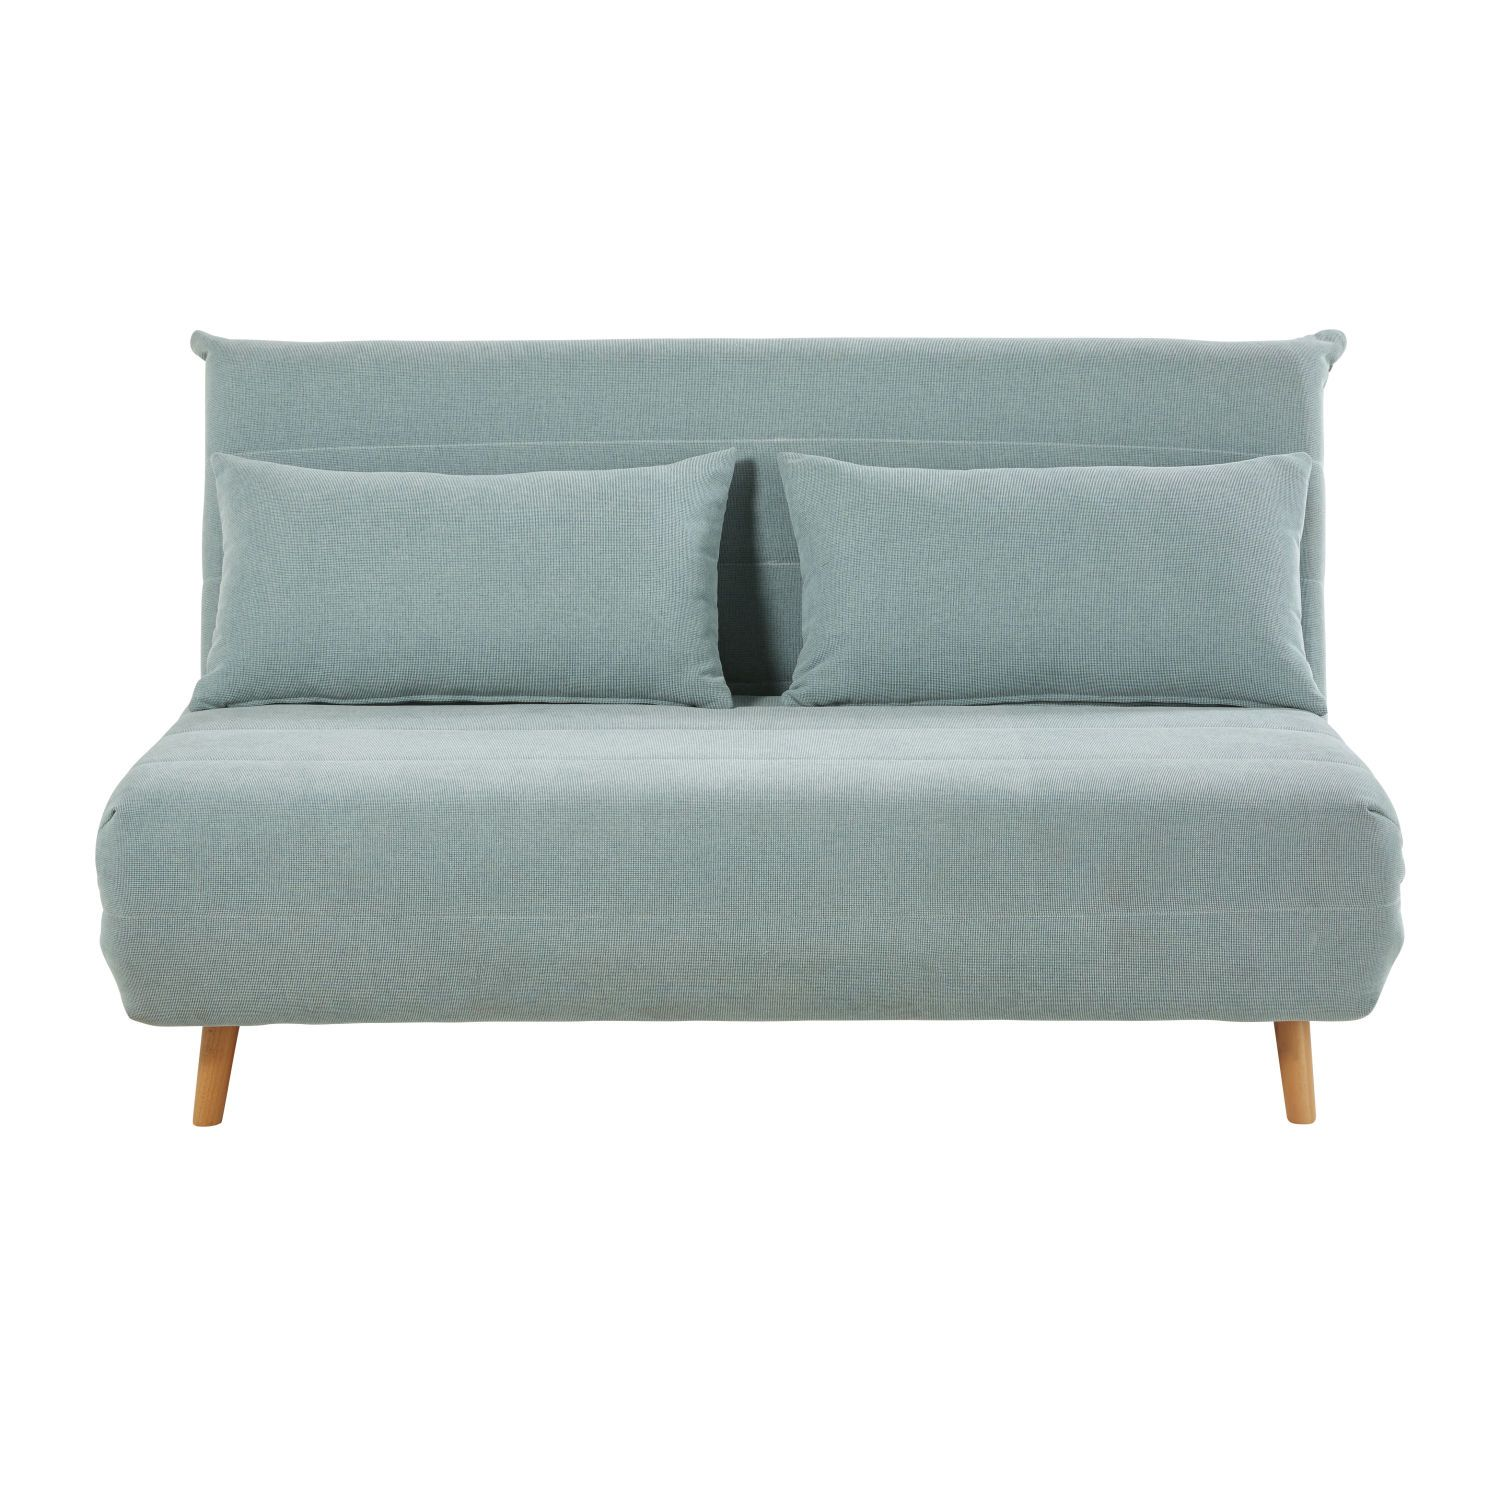 Sea Green Double Day Bed Sofa In 2019 Sofa Beds Sofa